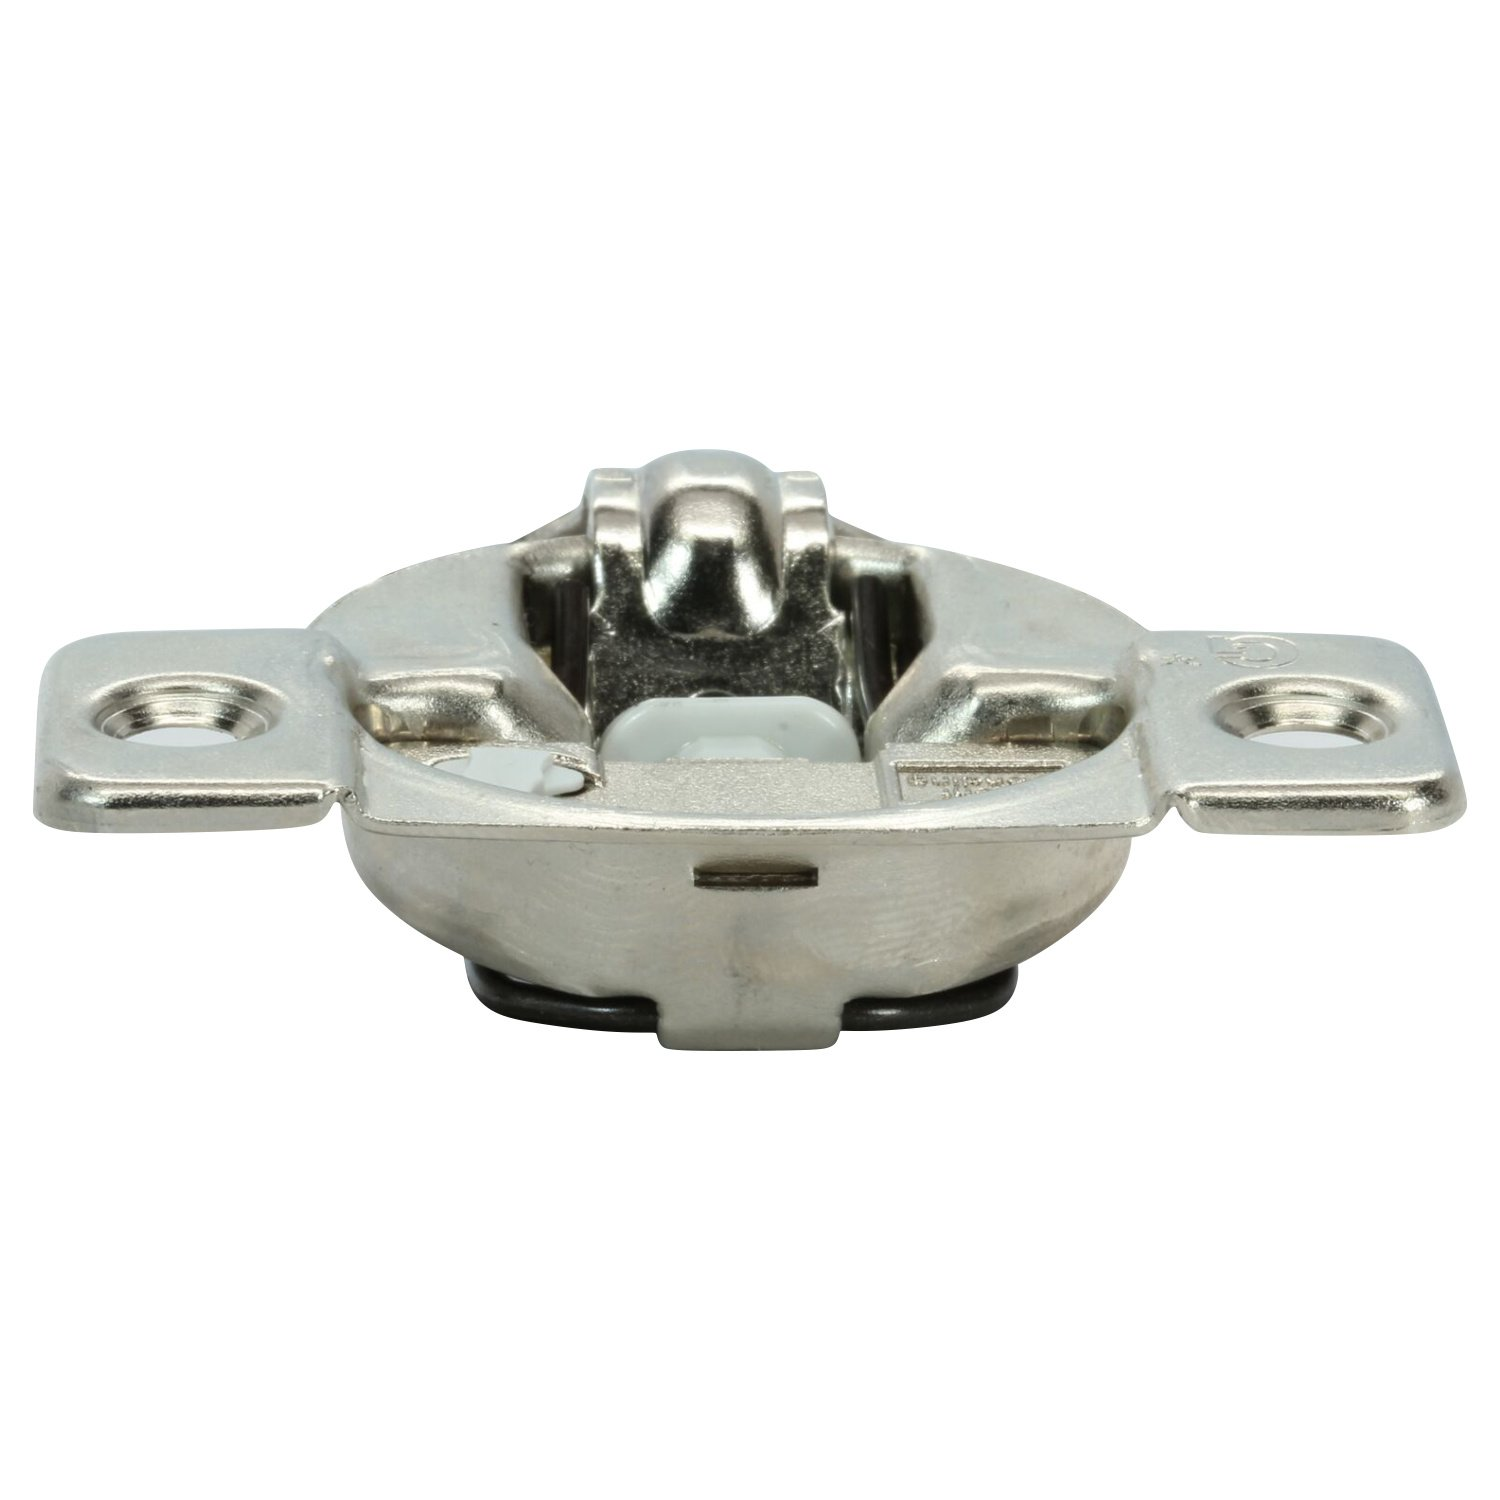 50 Pack Rok Hardware Grass TEC 864 108 Degree 1/4'' Overlay 3 Level Soft Close Screw On Compact Cabinet Hinge 04429A-15 3-Way Adjustment 45mm Boring Pattern by Rok (Image #2)